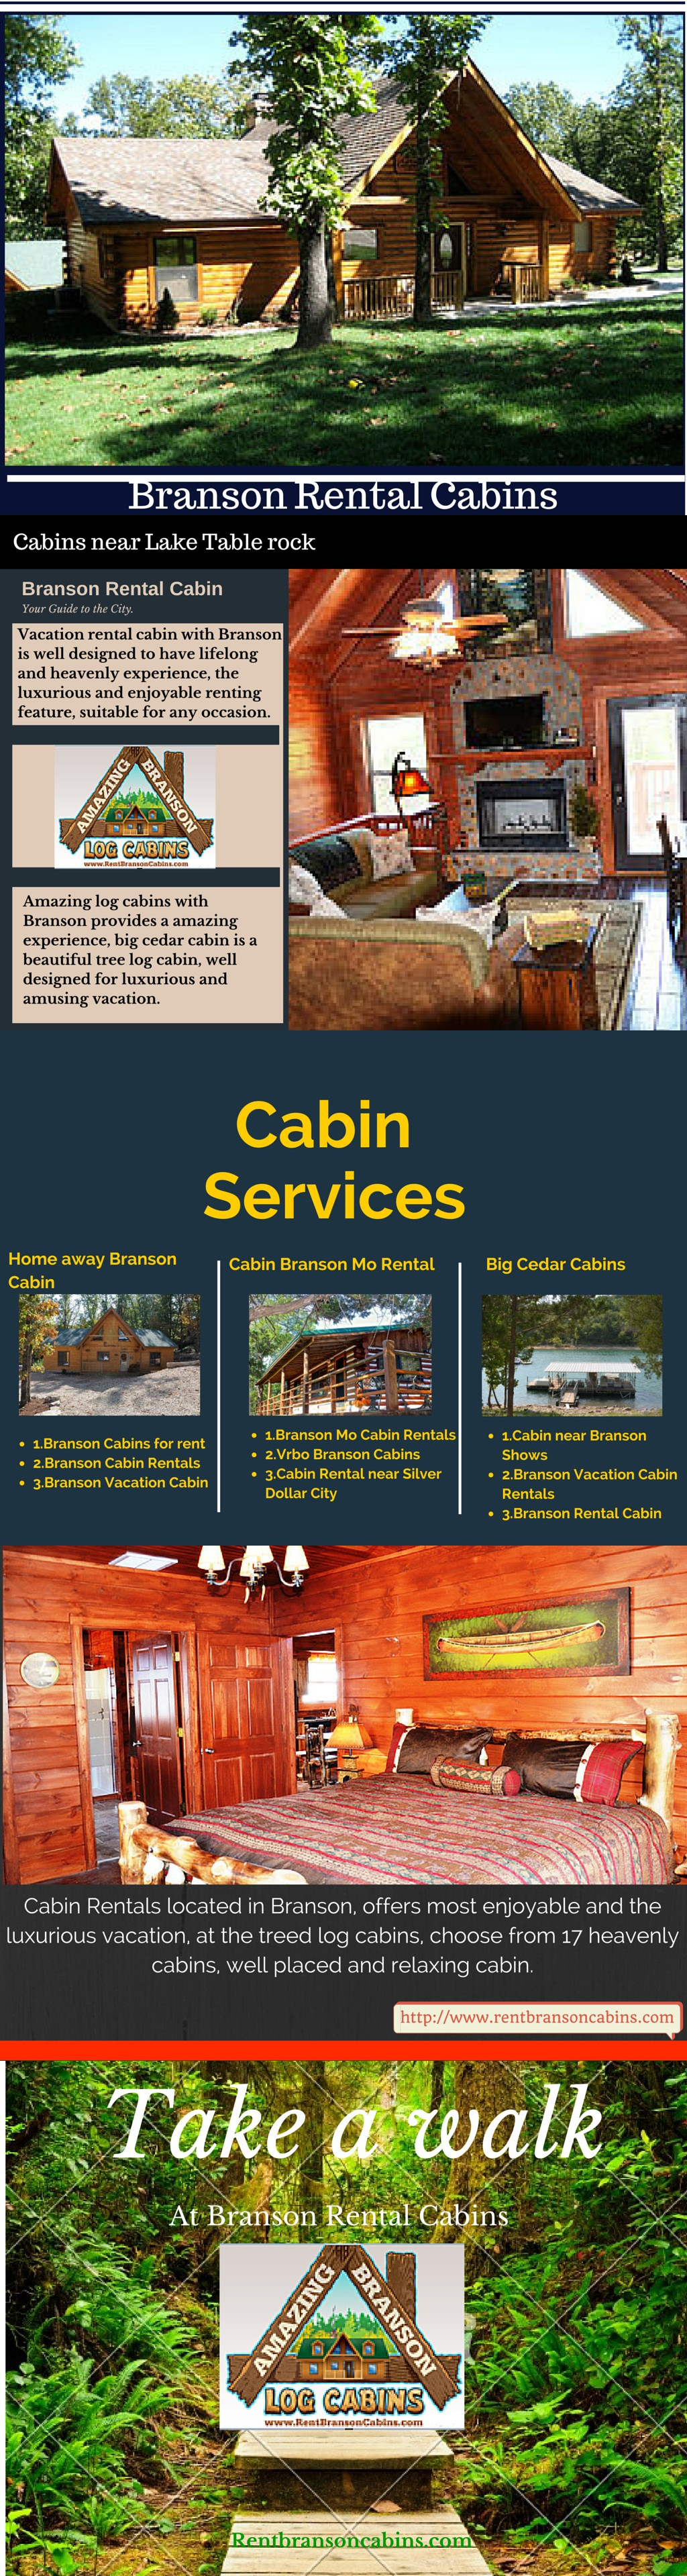 cabins branson vacation rent mo for rental property cabin in redawning moonlight